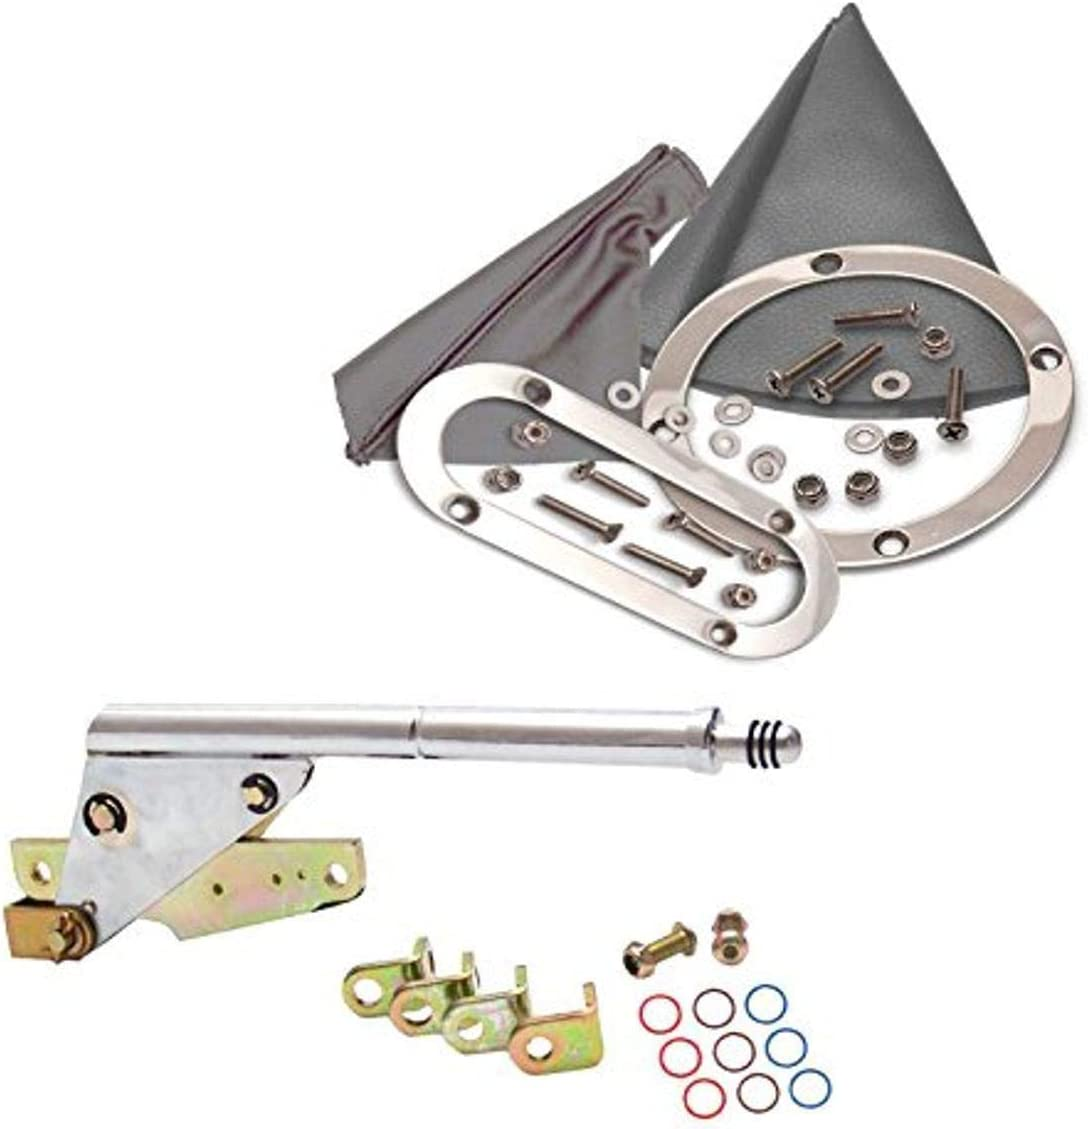 American Shifter Max 55% OFF 382077 Kit PG Luxury 23